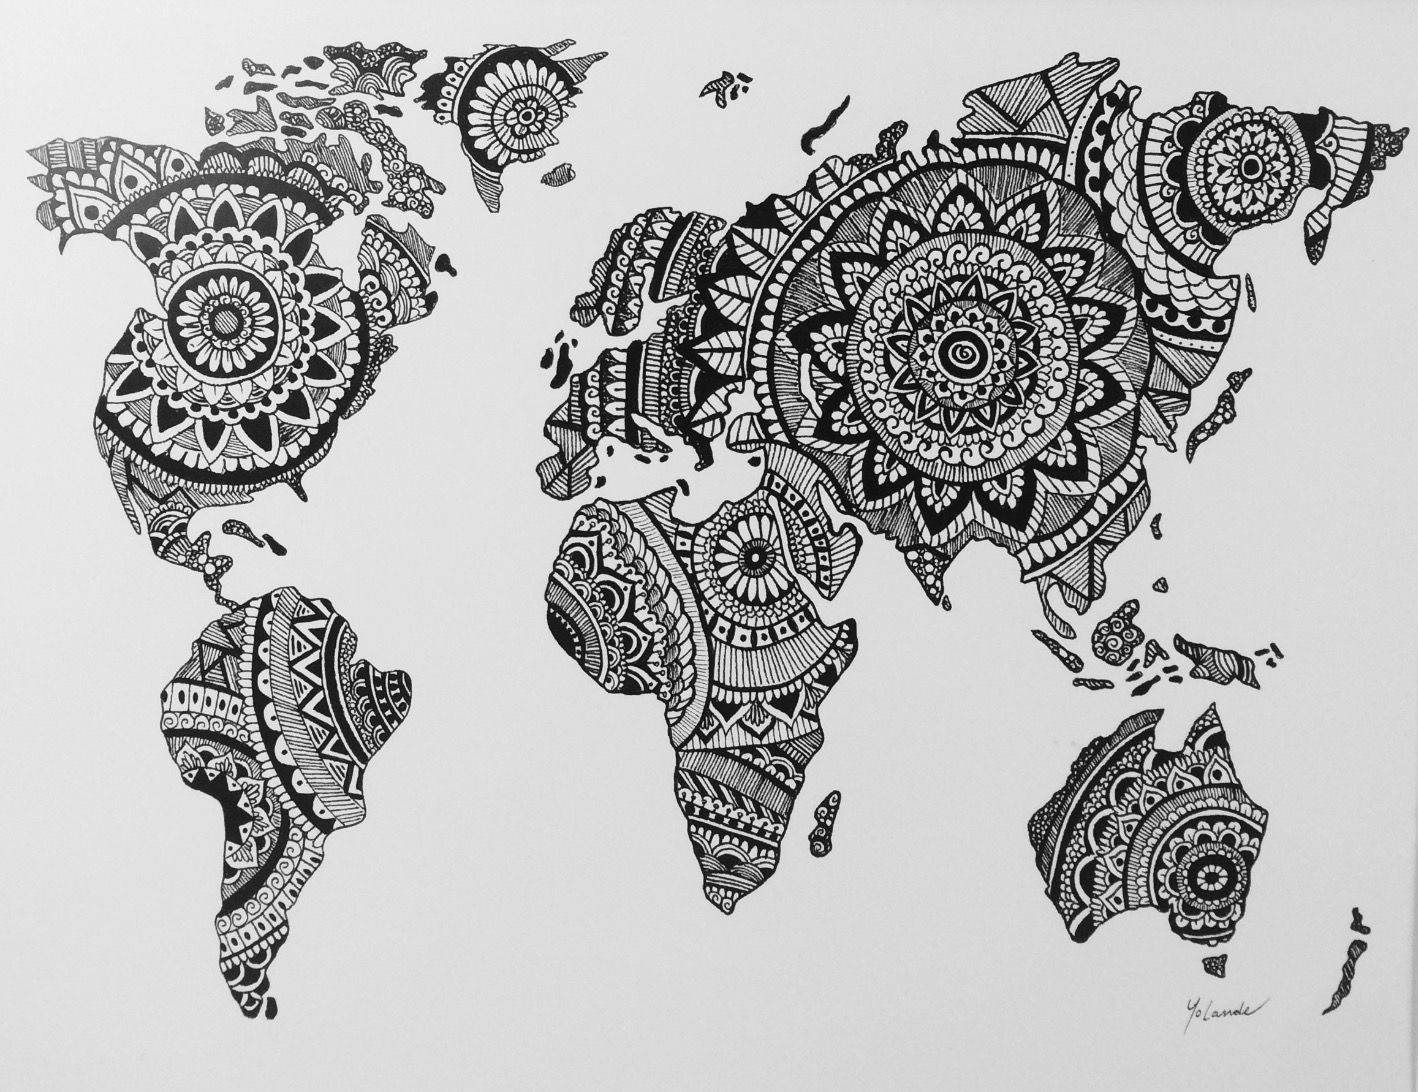 Zentangle World Map Random Room Things Pinterest Mandala - Mandala map of the world